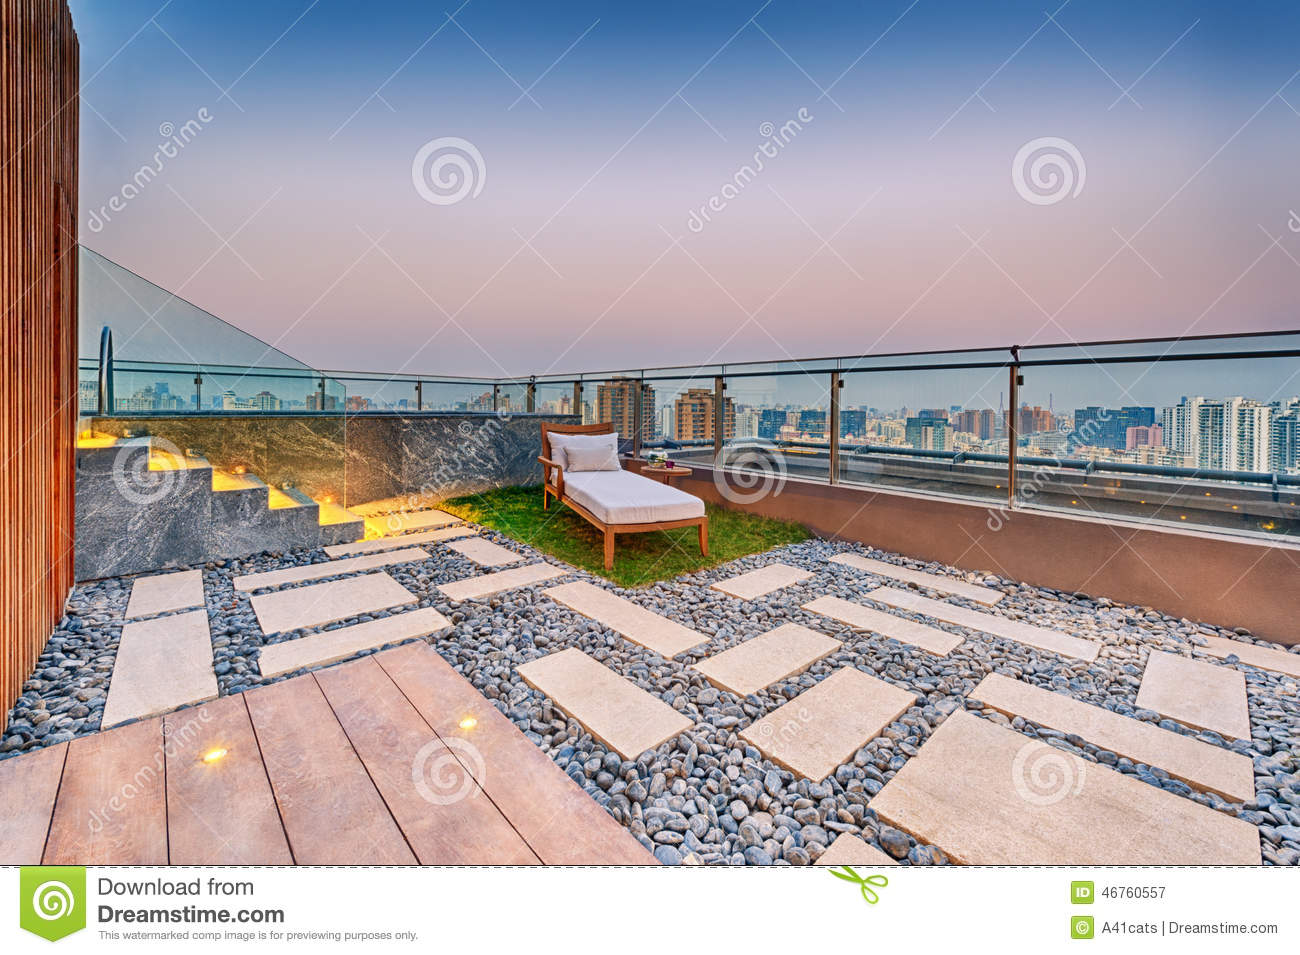 Roof terrace with jacuzzi and sun lounger stock photo for Terrace jacuzzi